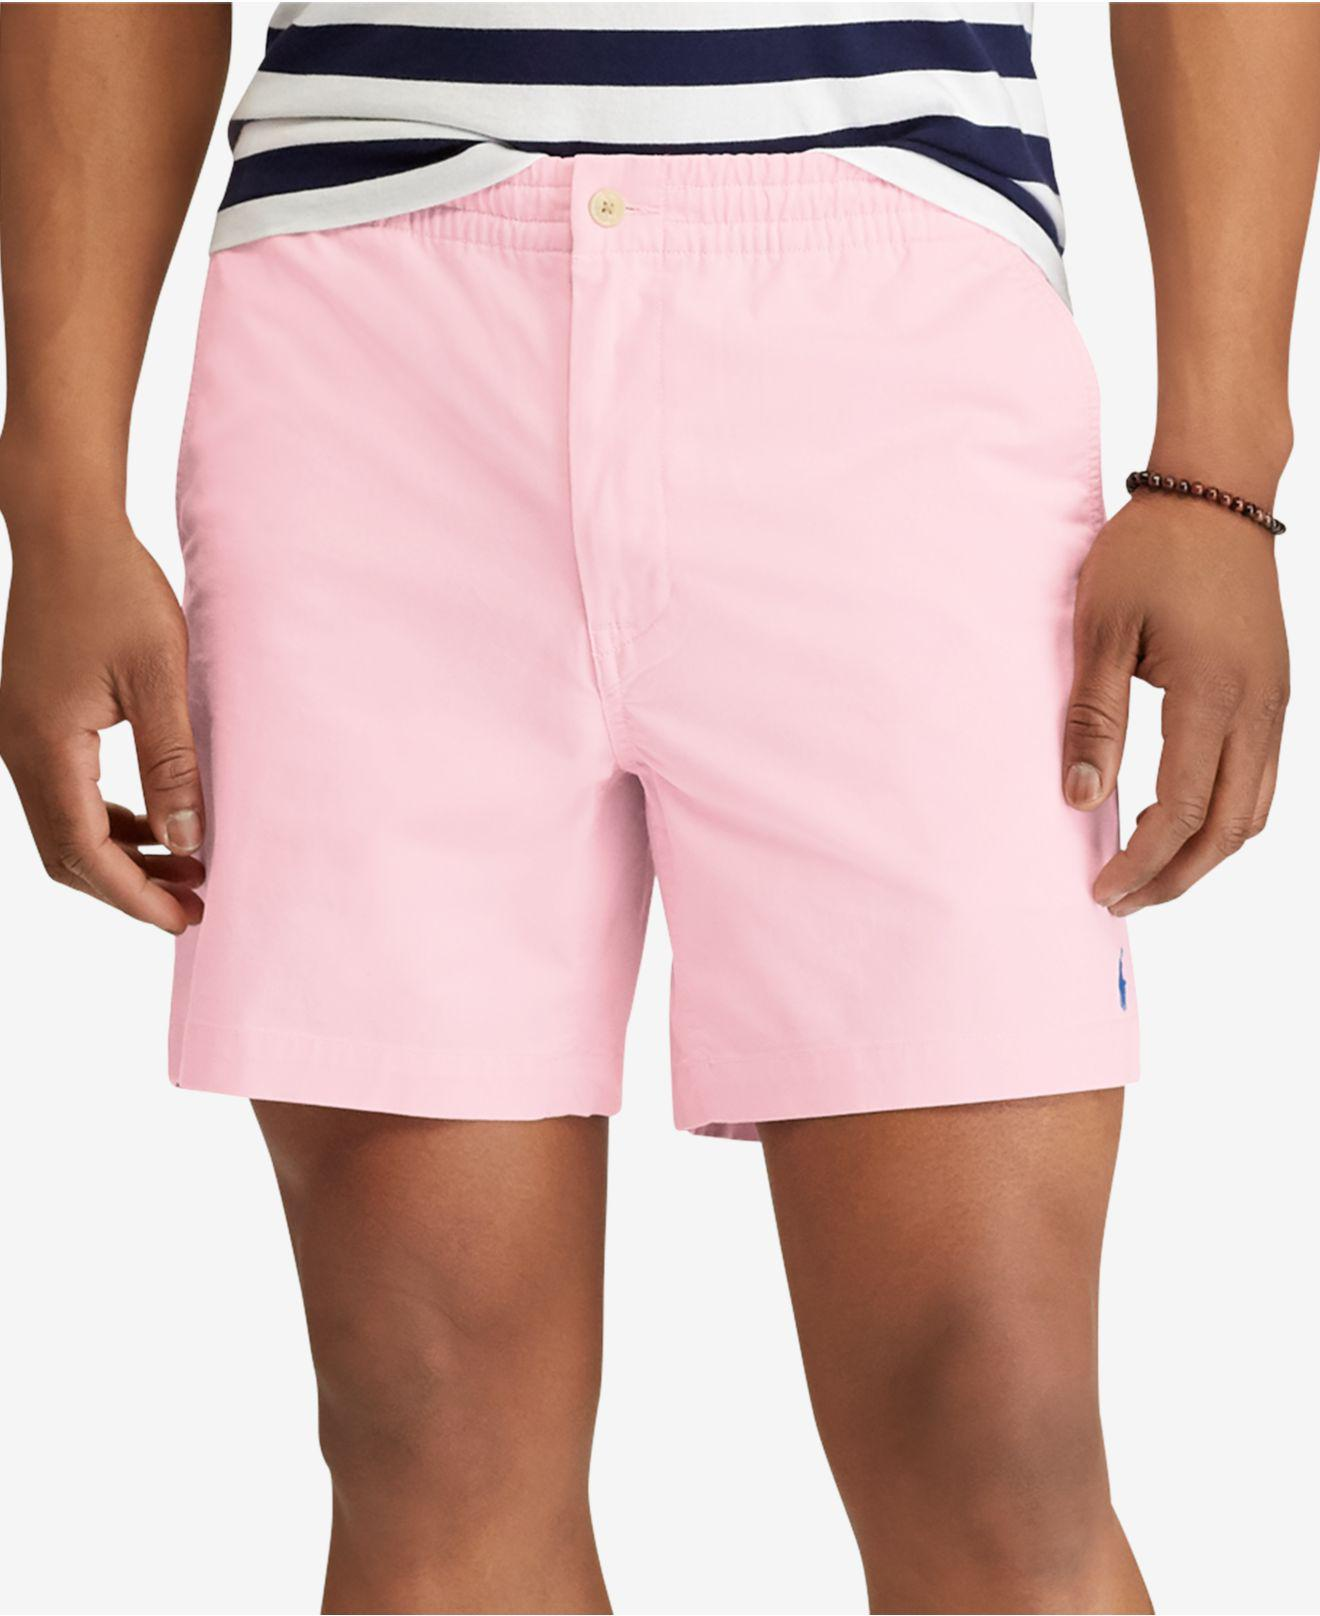 teal collared shirt ralph lauren newport shorts